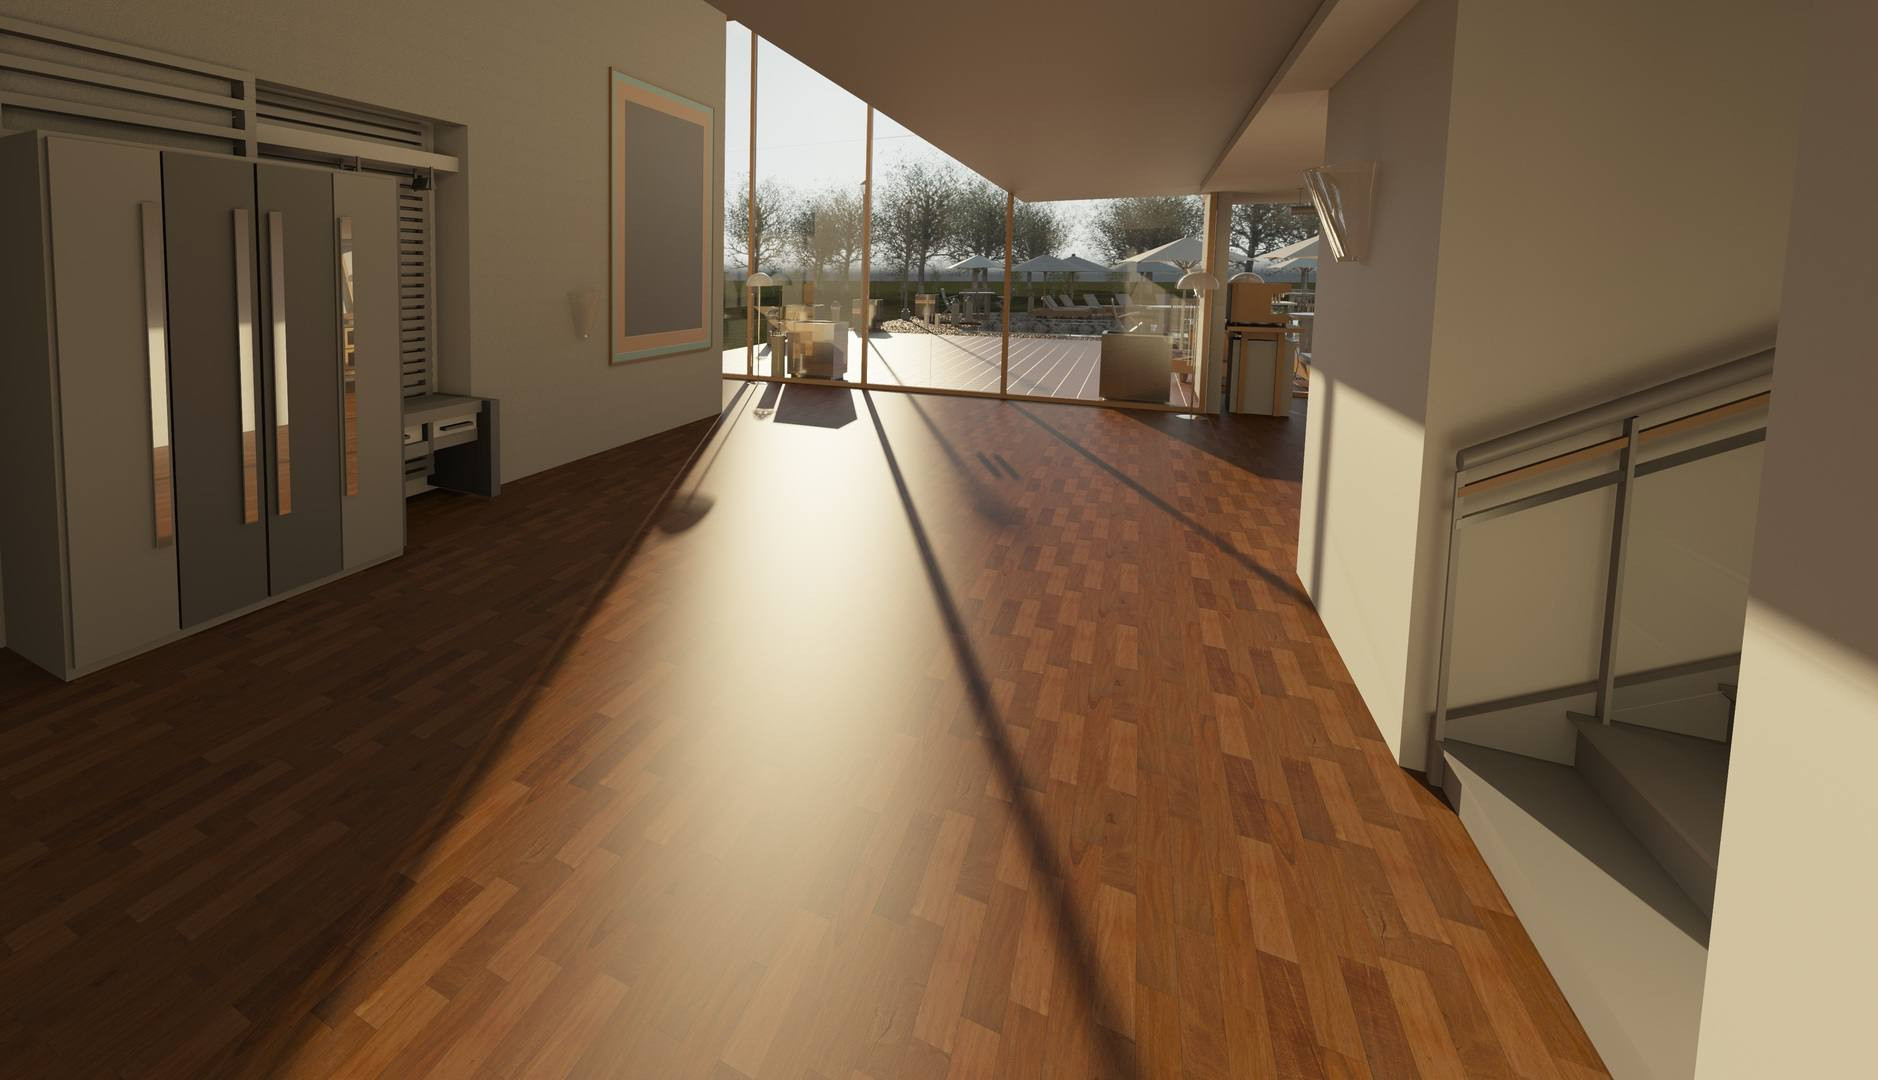 hardwood floor stain options of common flooring types currently used in renovation and building intended for architecture wood house floor interior window 917178 pxhere com 5ba27a2cc9e77c00503b27b9